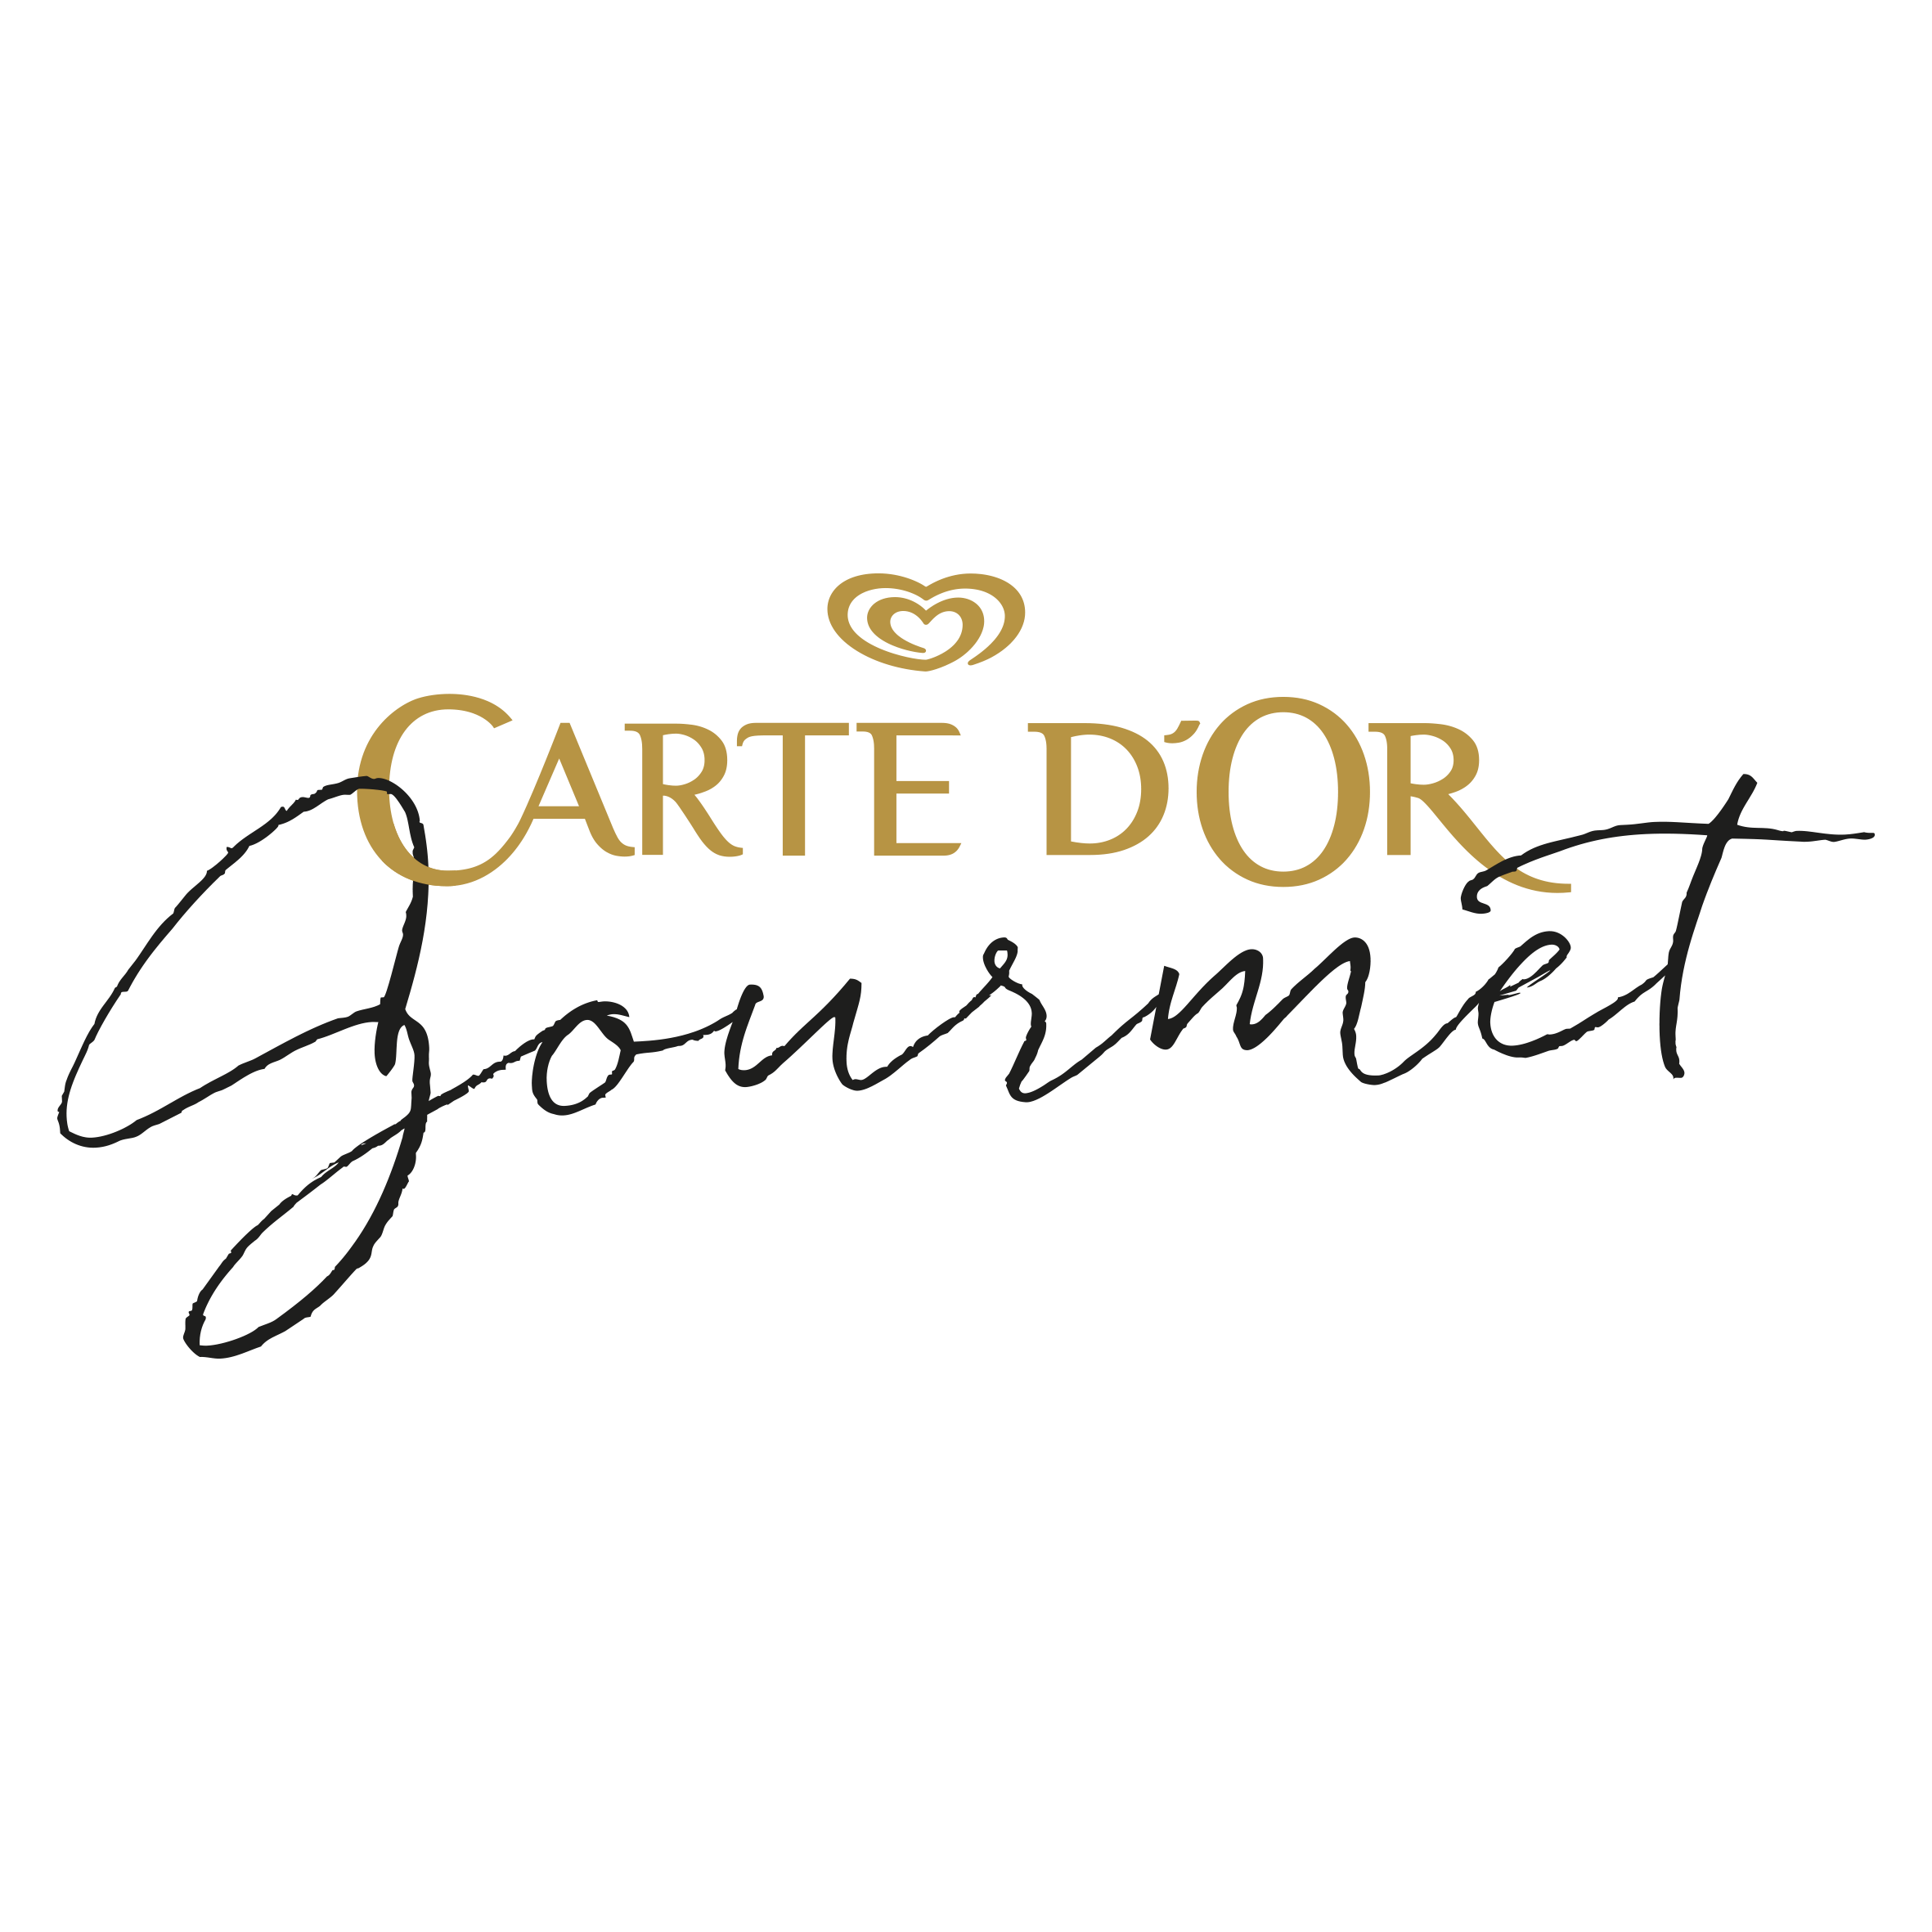 Carte d'or Gourmet logo